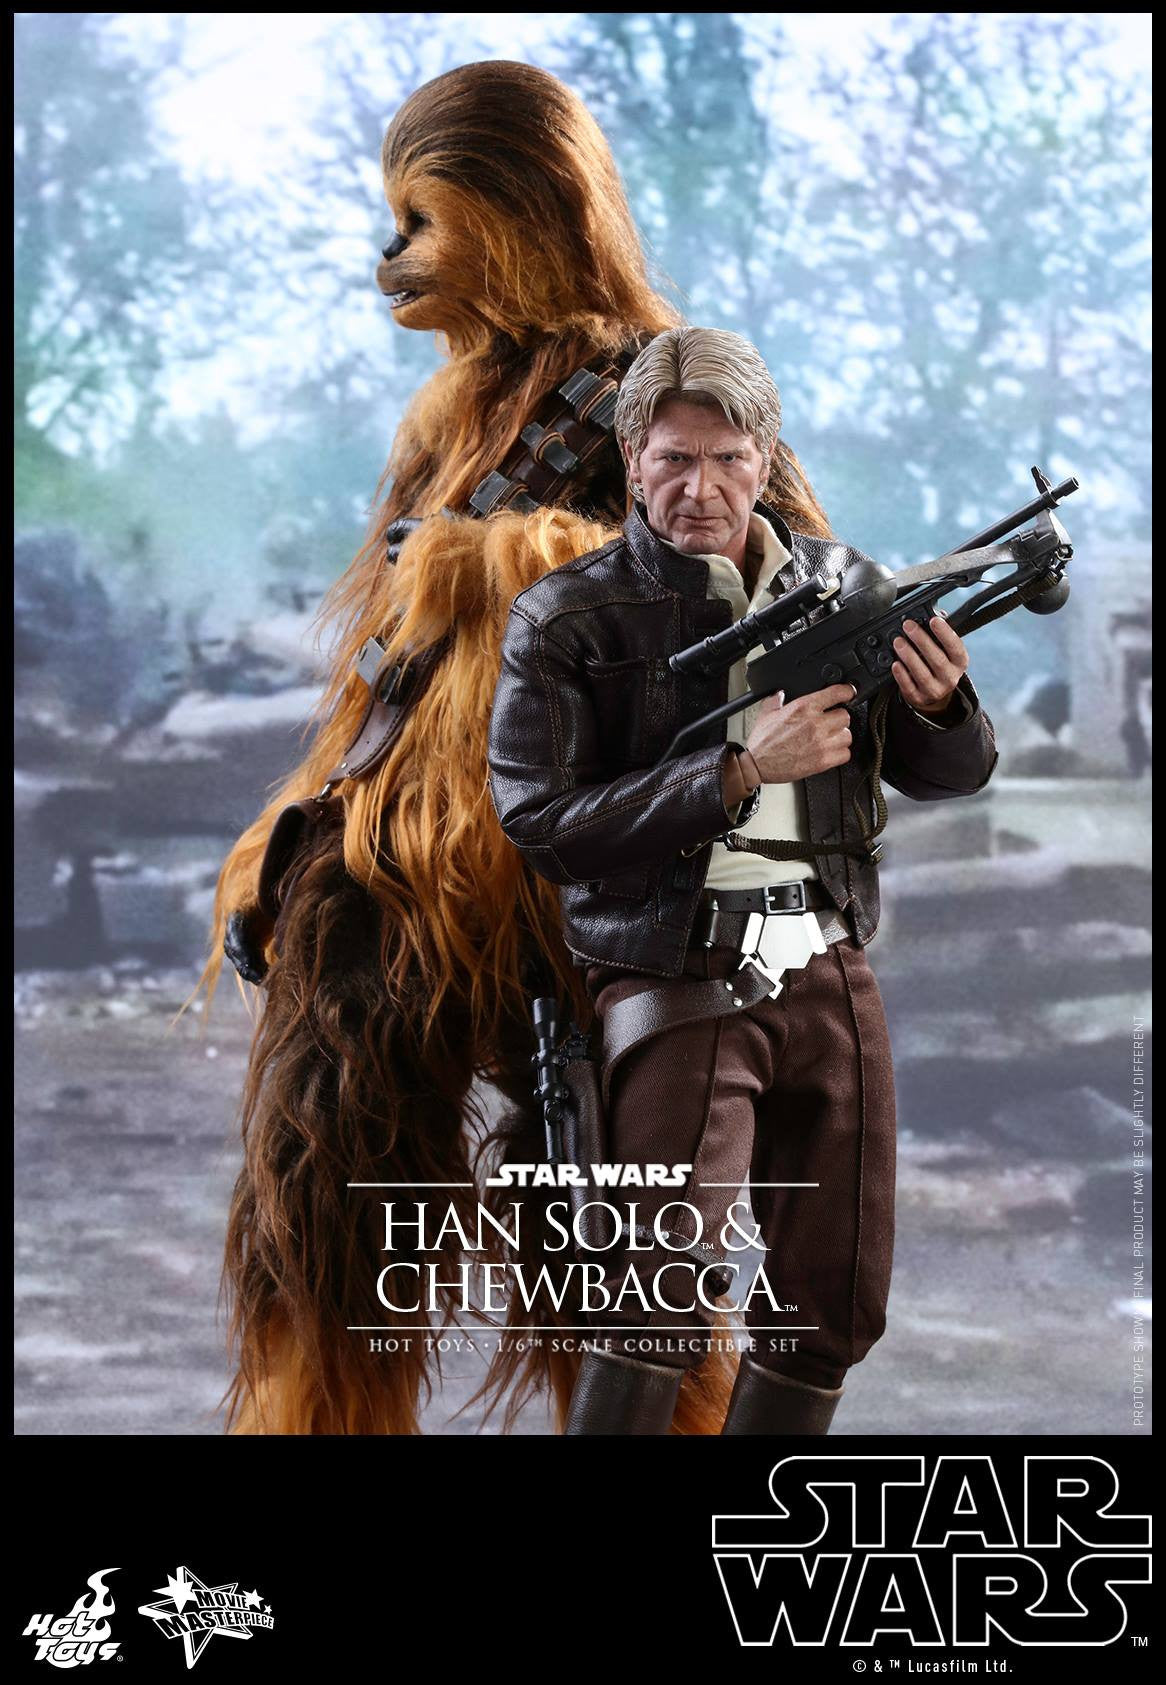 Hot Toys - MMS376 - Star Wars: The Force Awakens - Han Solo & Chewbacca Set - Marvelous Toys - 5